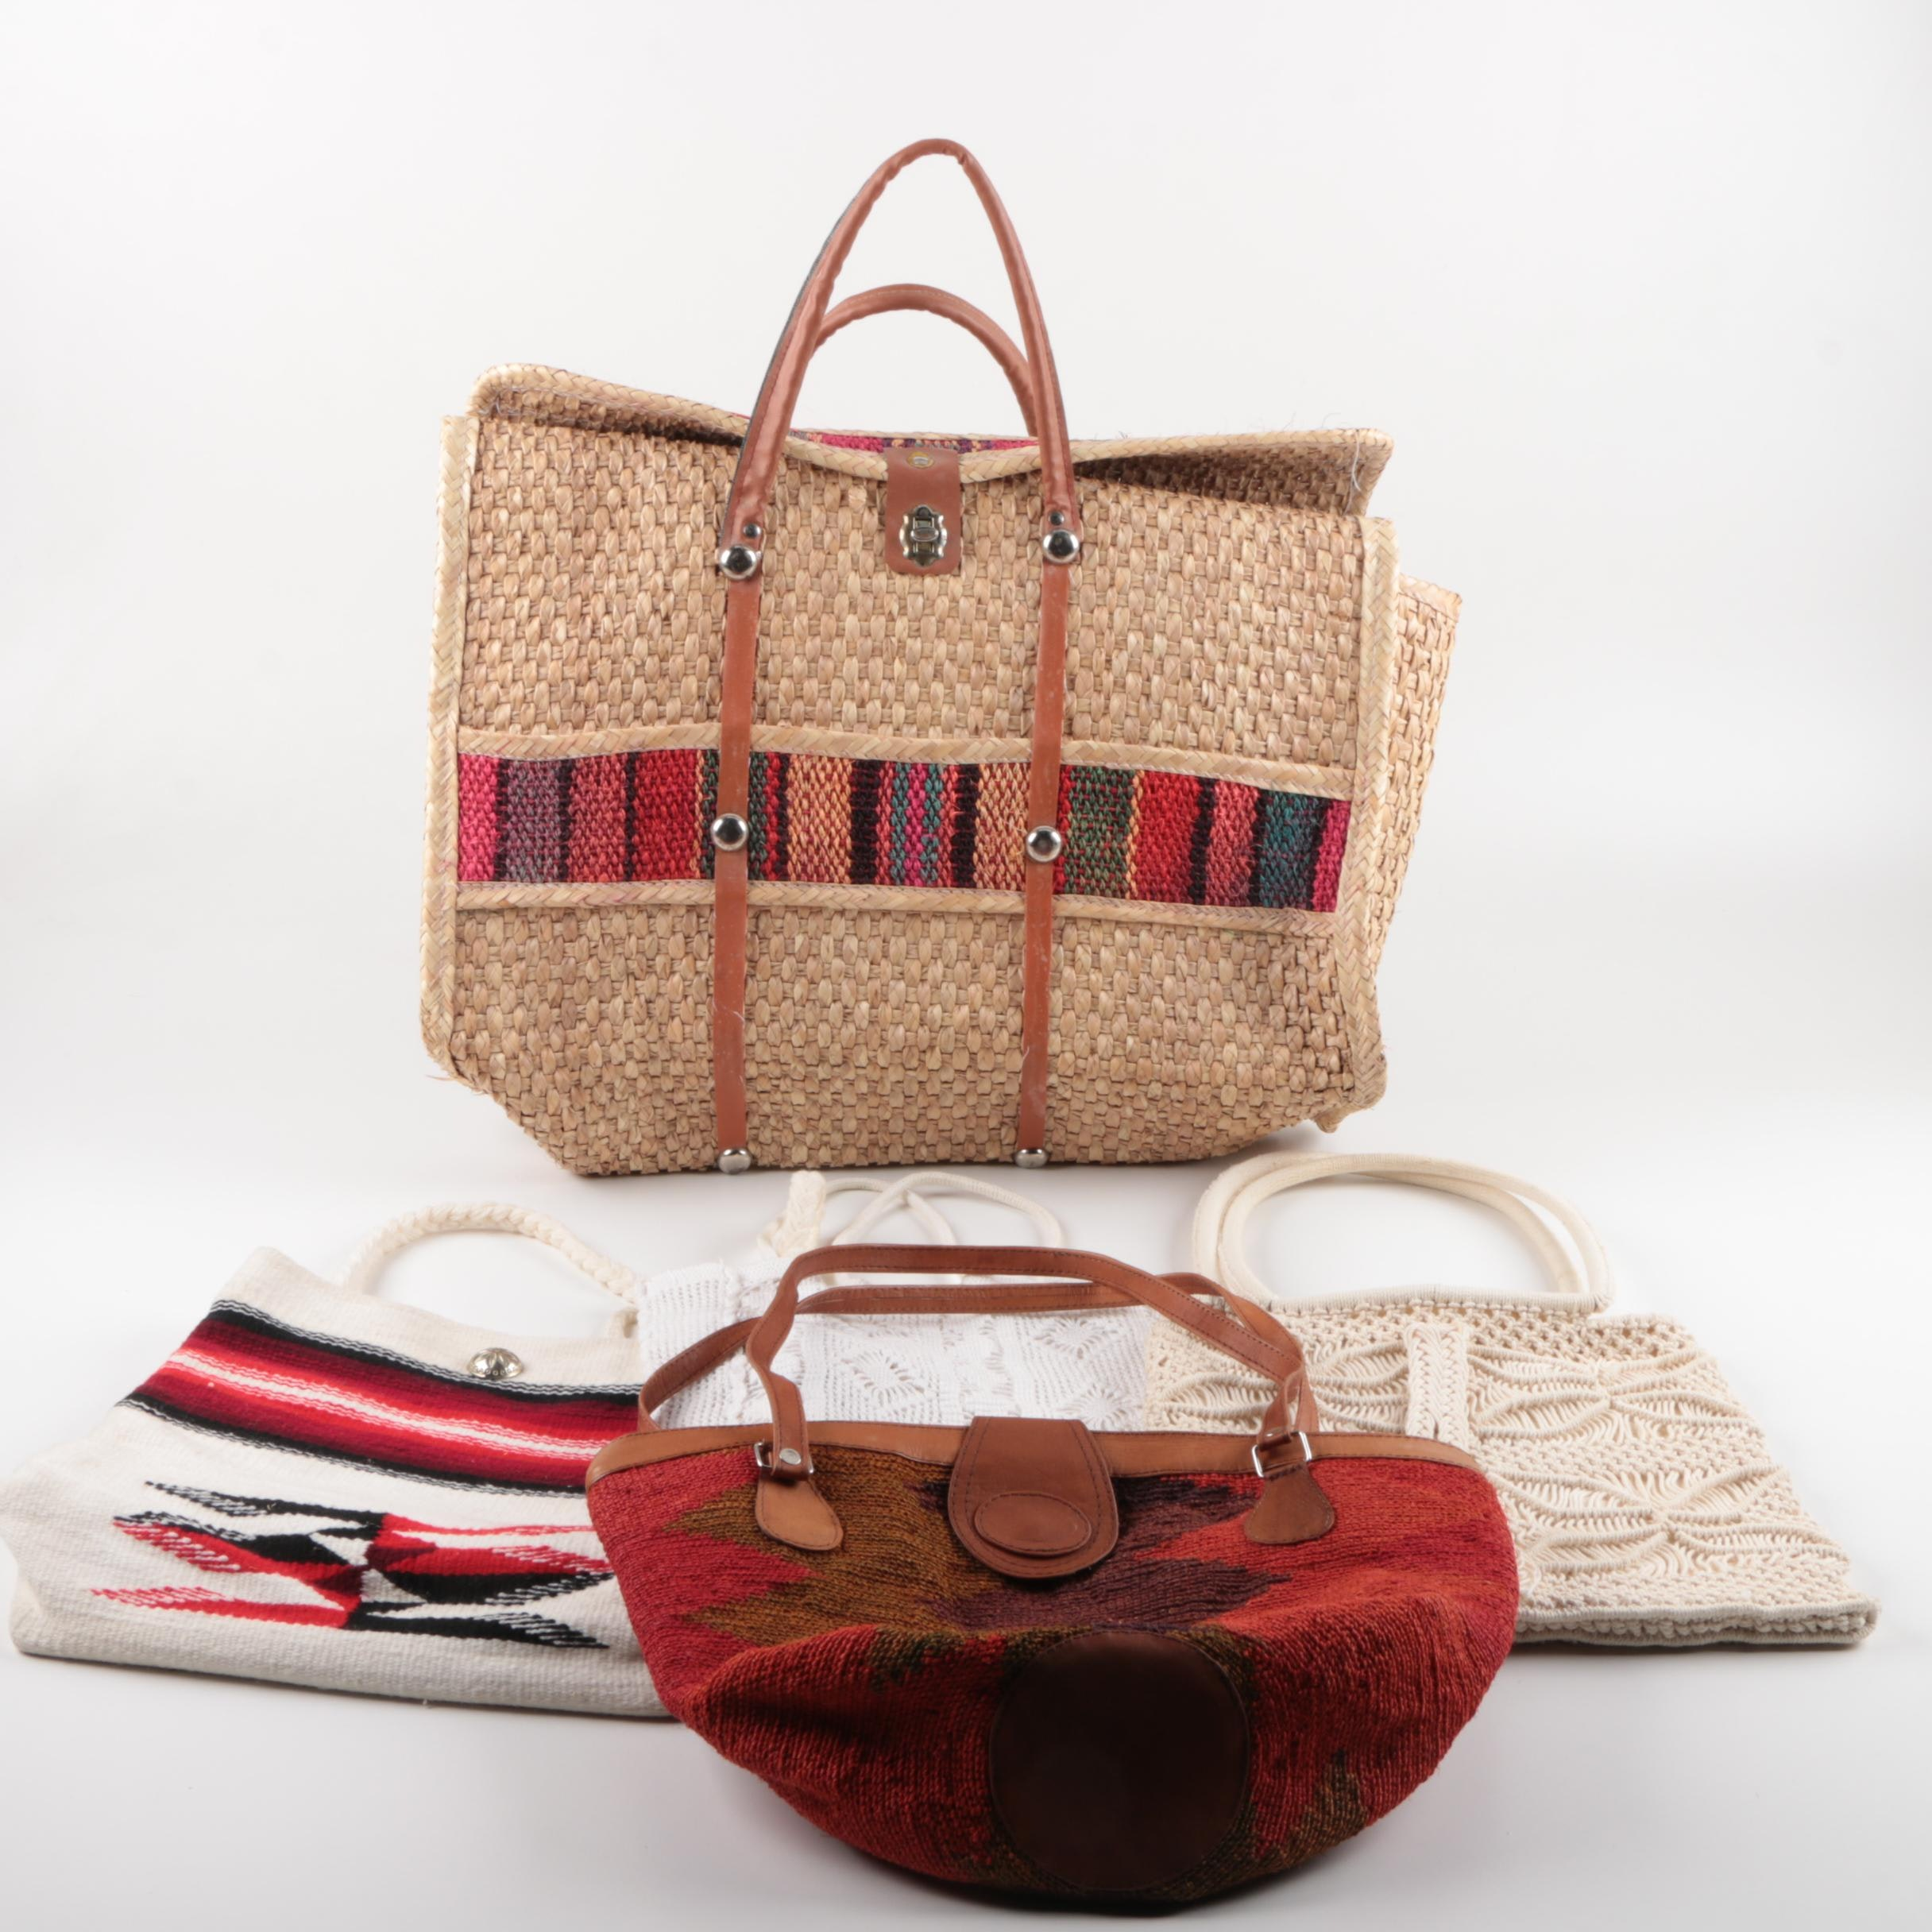 Woven and Macrame Handbags